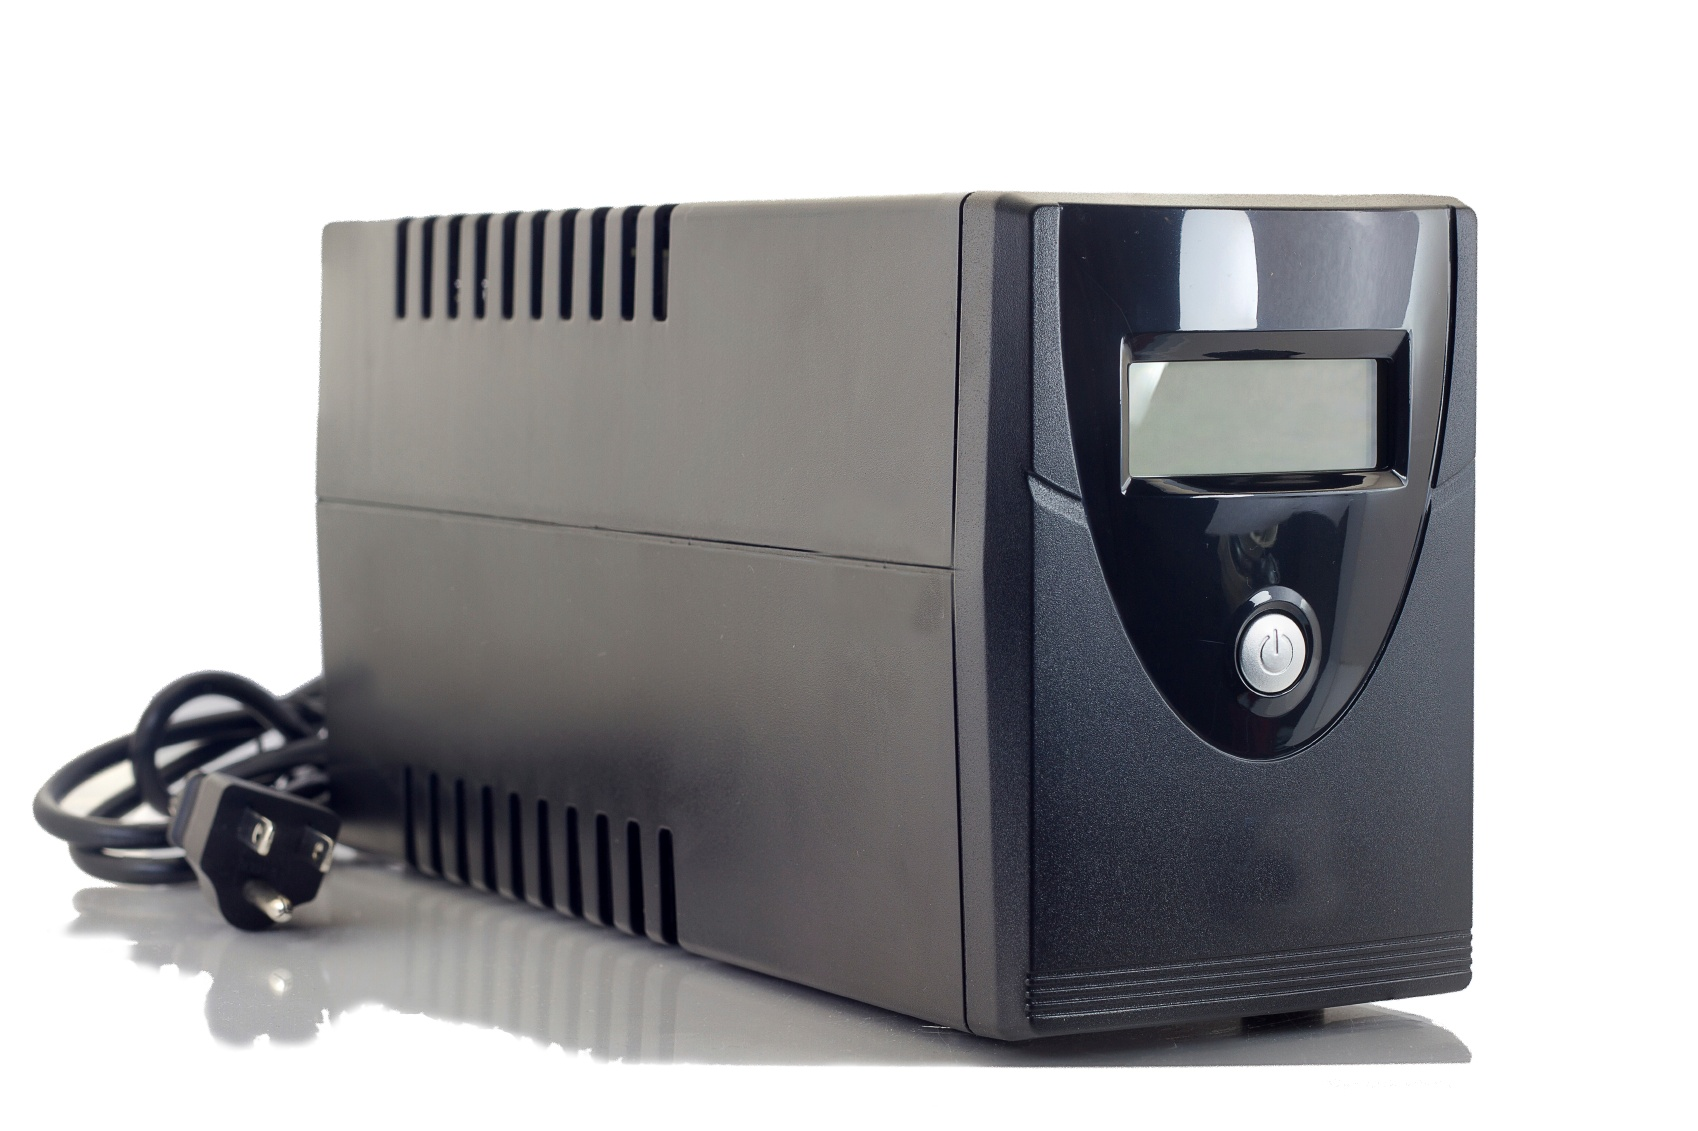 computer ups to power a pellet stove